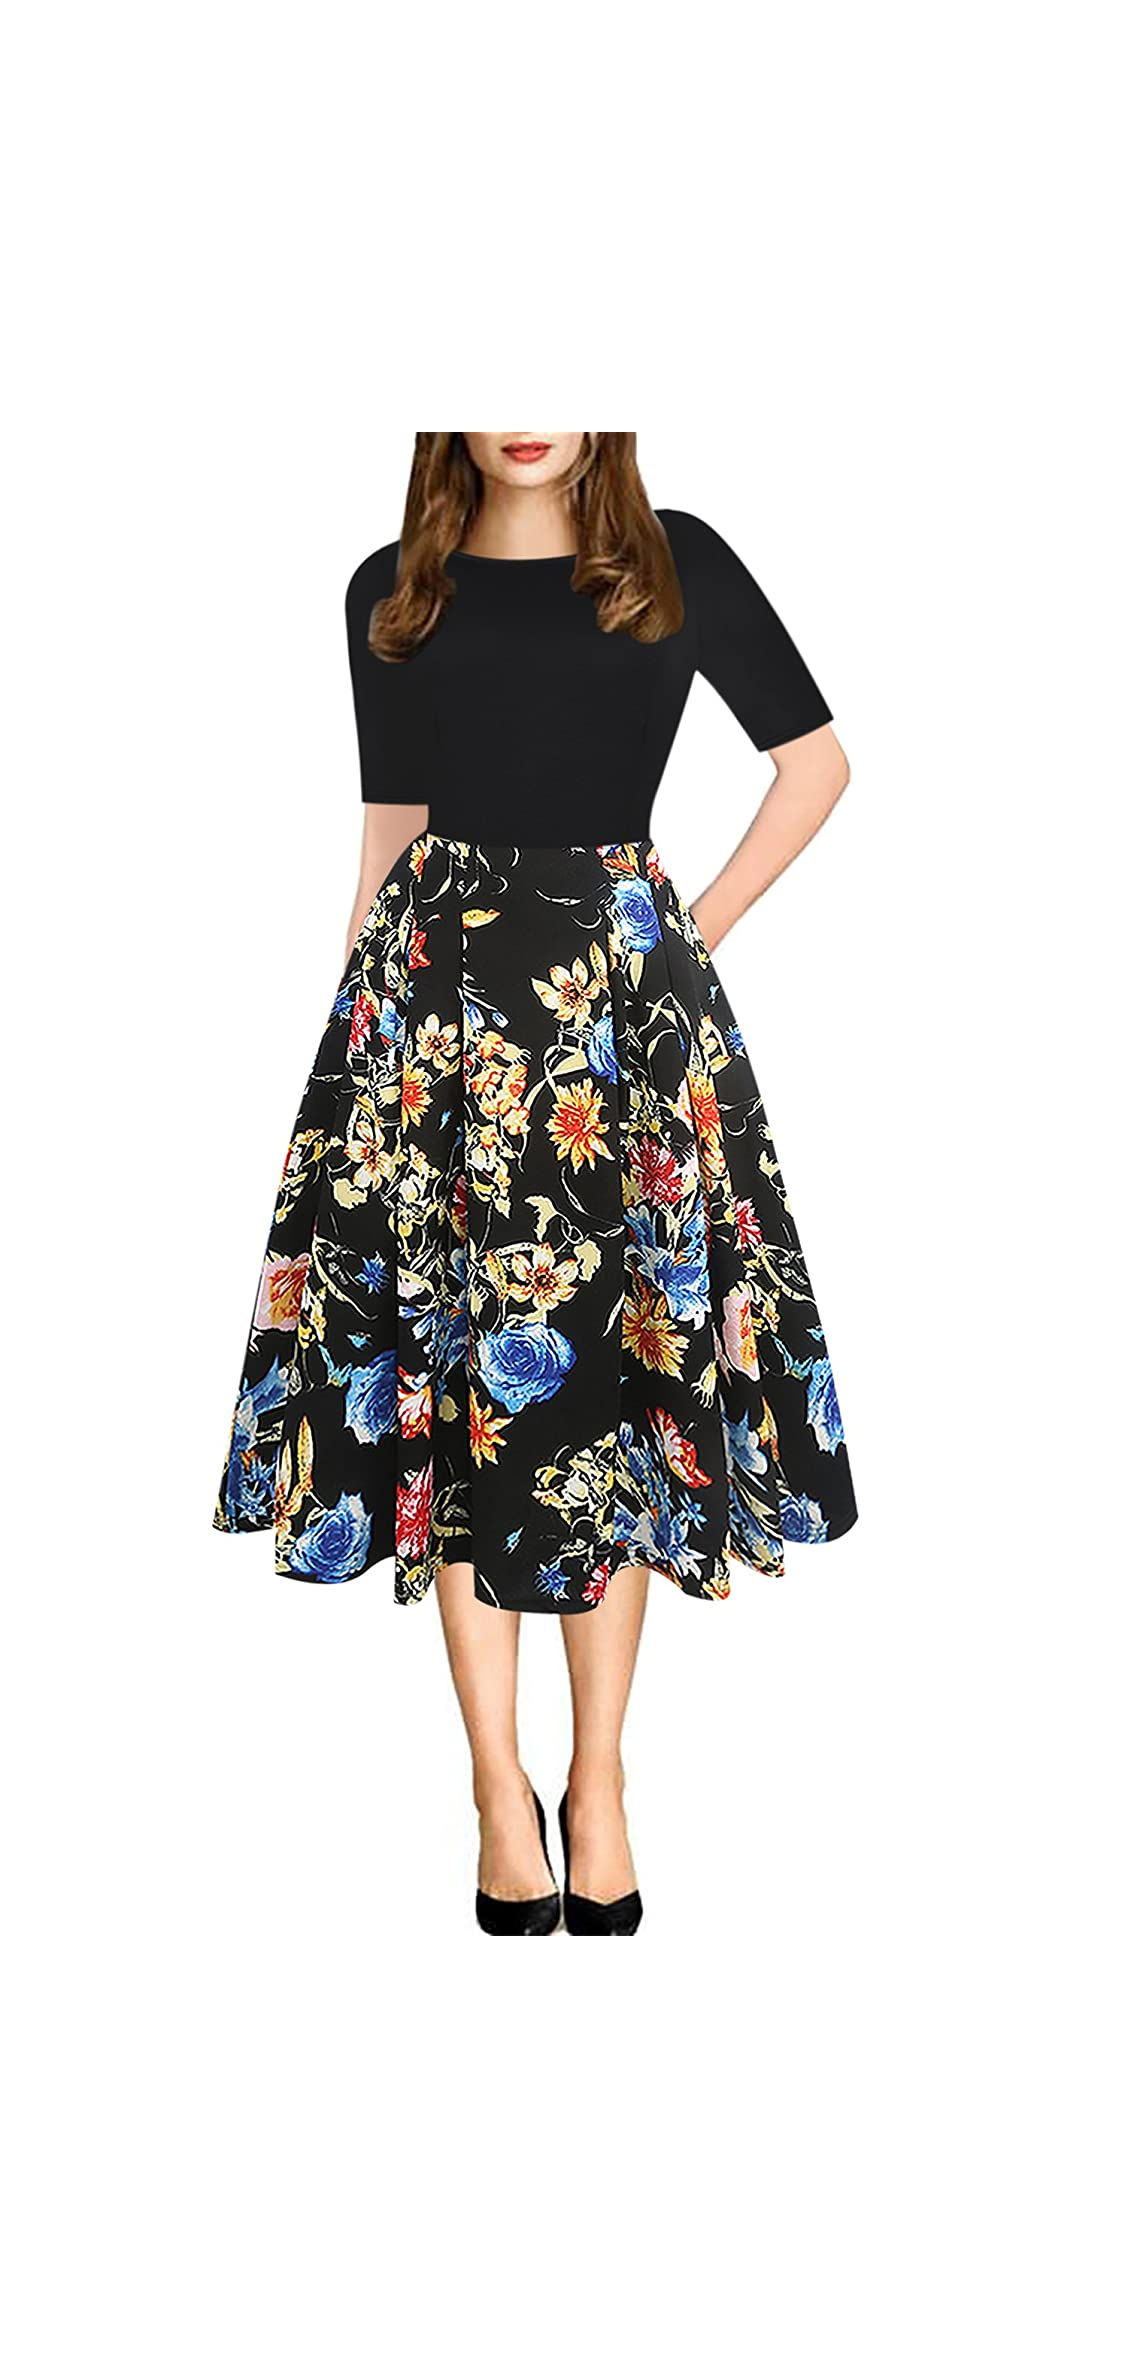 Women's Vintage Patchwork Pockets Puffy Swing Casual